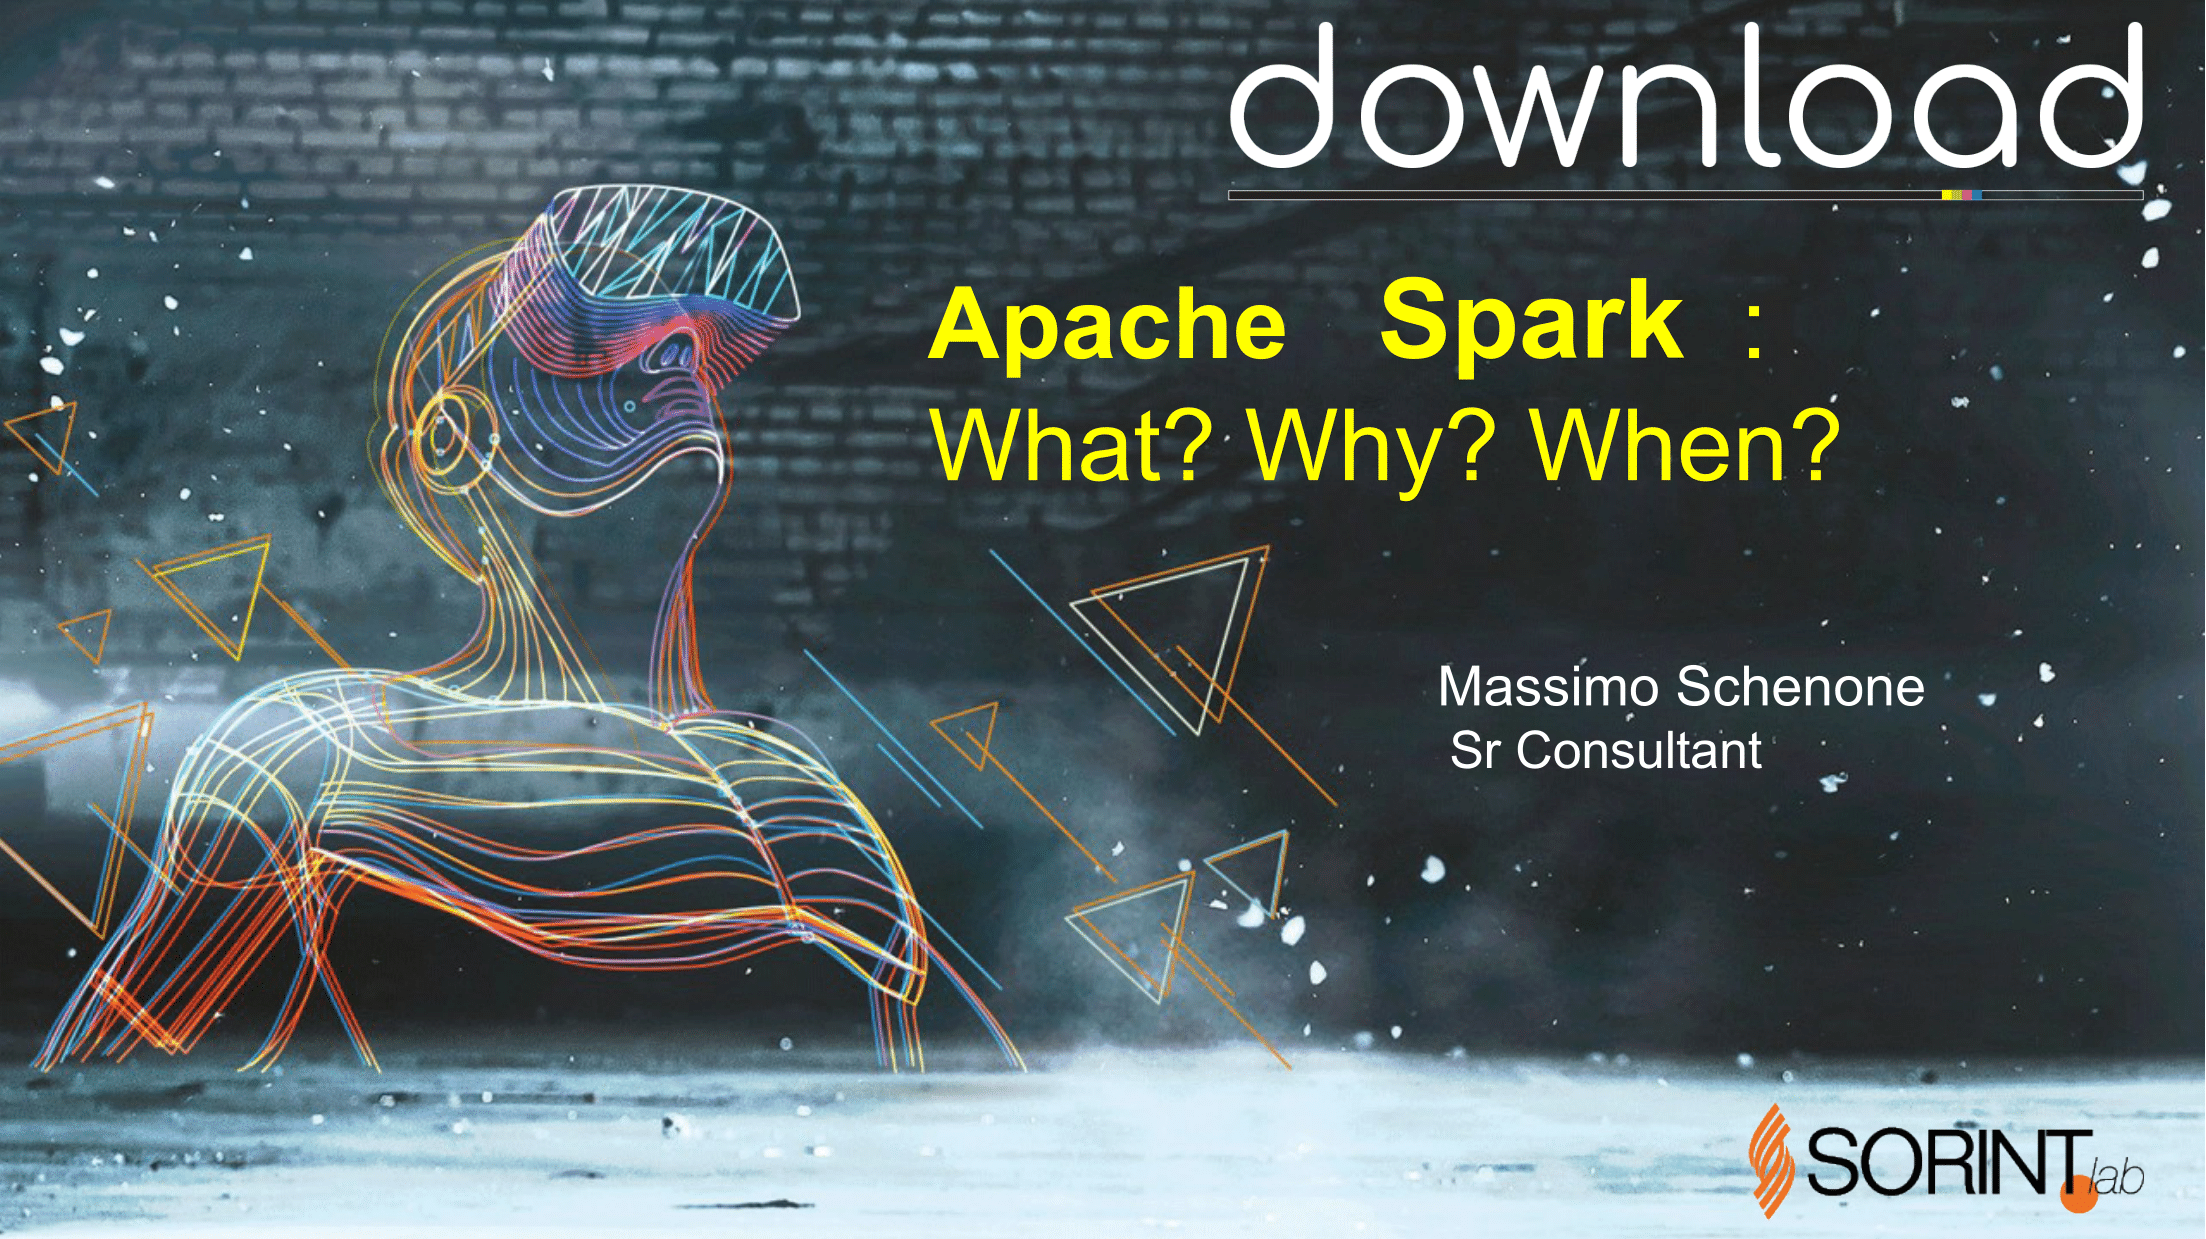 Apache_Spark_What_Why_When-01.png